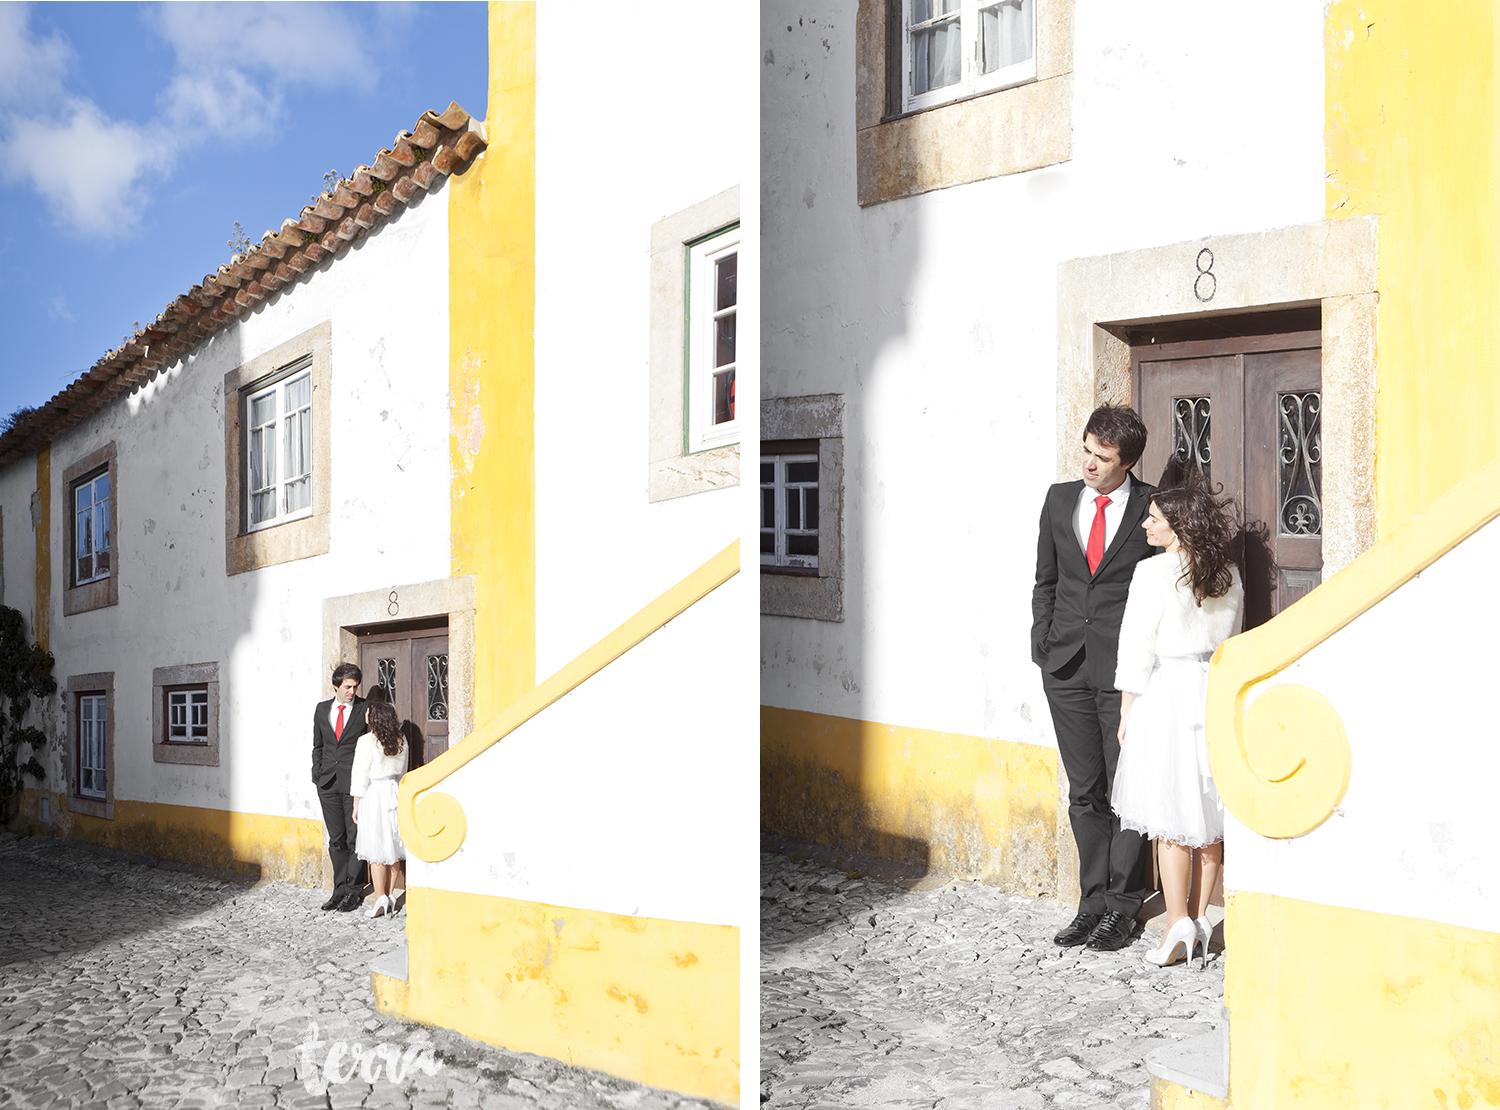 sessao-fotografica-trash-the-dress-viva-hotel-obidos-terra-fotografia-0035.jpg